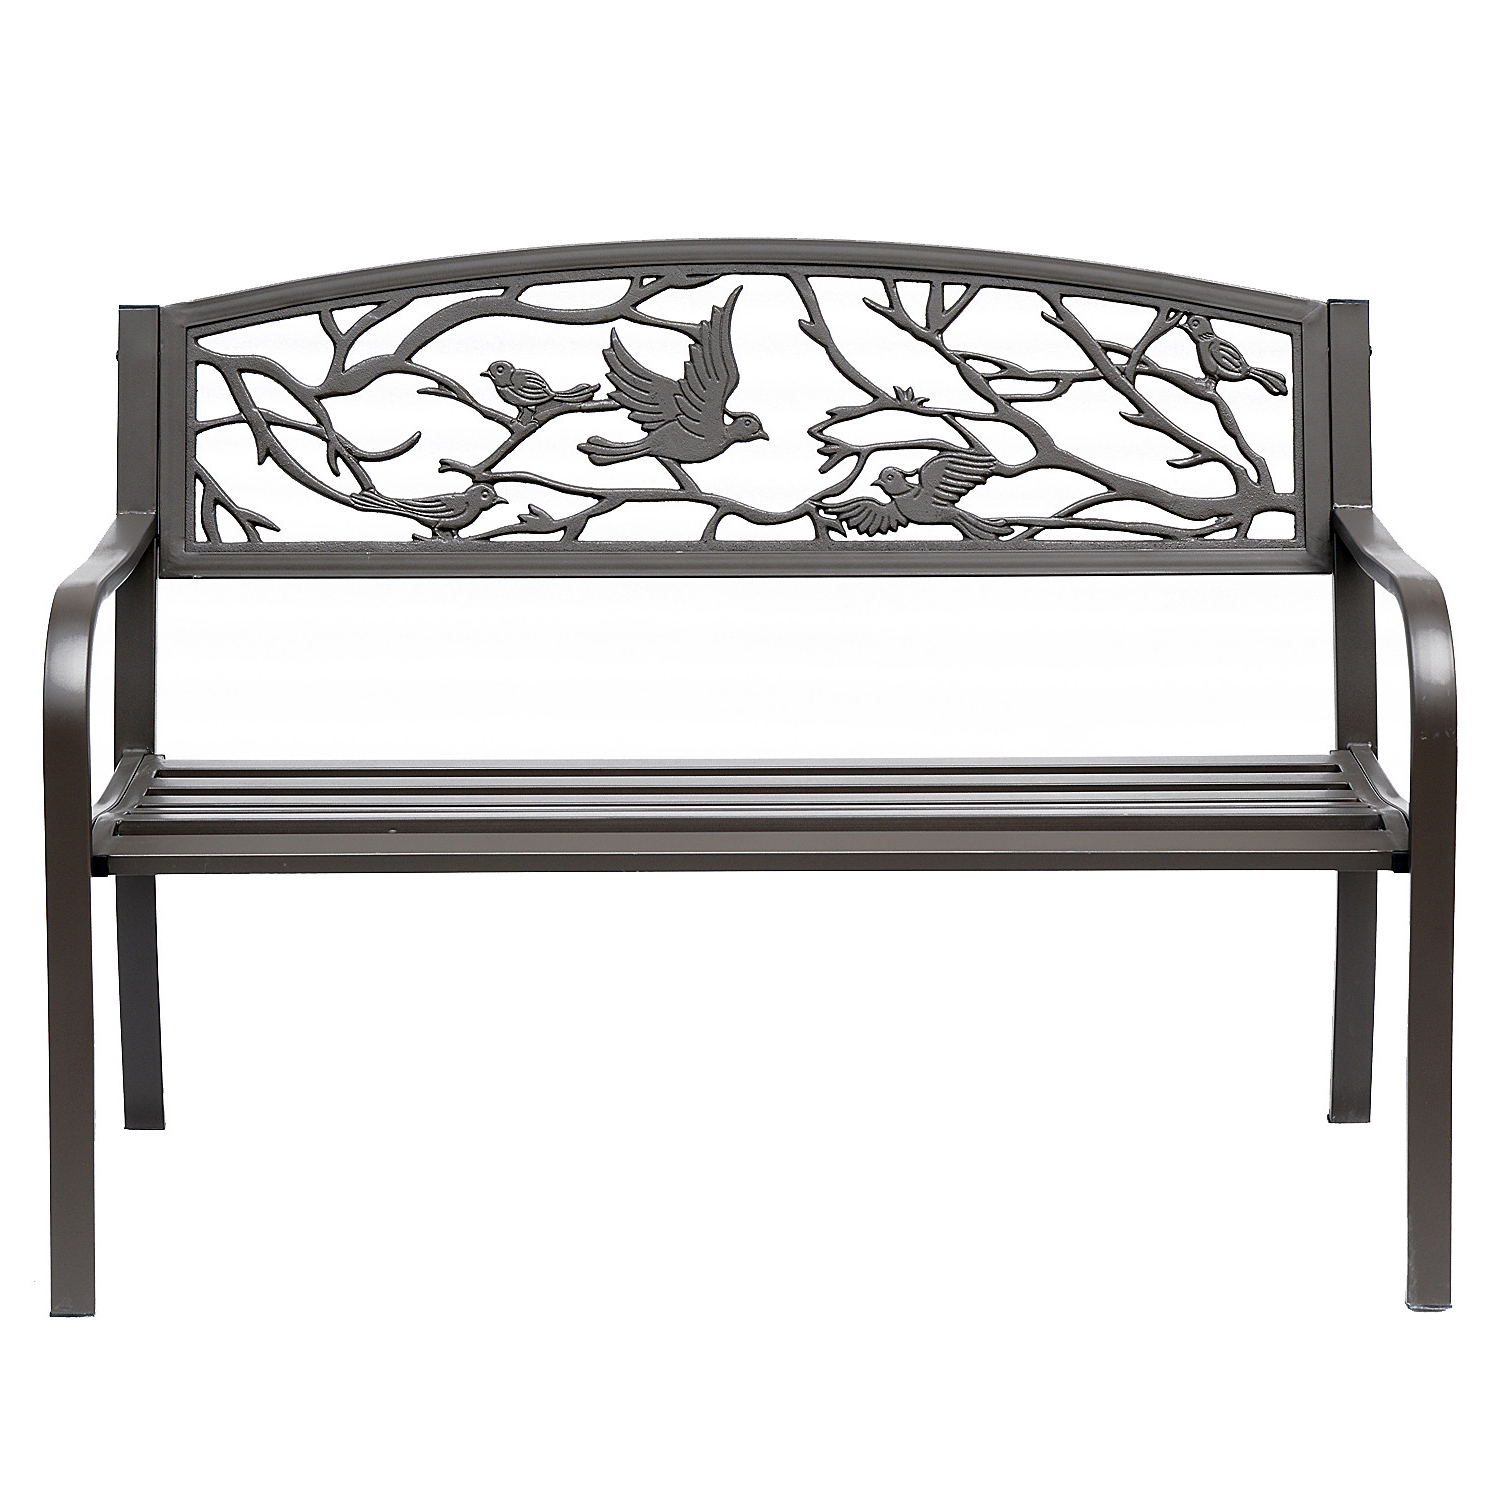 """Madeline Vintage Bird Cast Iron Garden Benches With Regard To Most Popular Outsunny 50"""" Vintage Bird Pattern Garden Cast Iron Patio Bench – Brown (View 9 of 30)"""